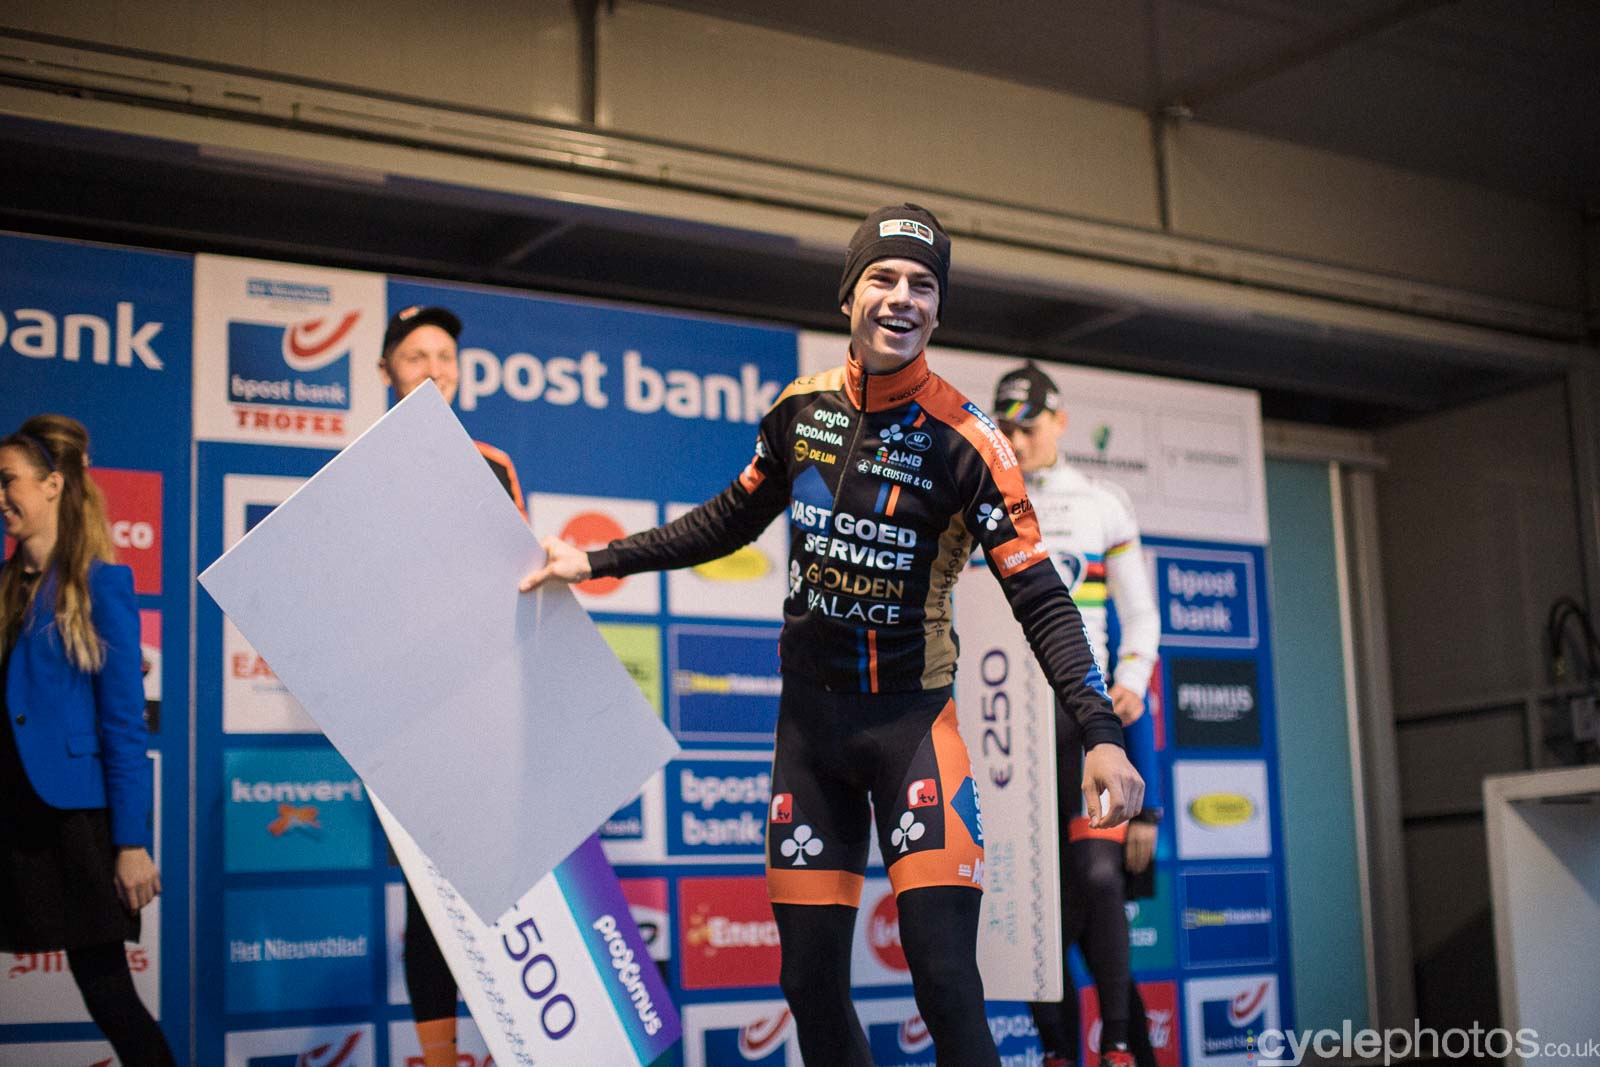 2015-cyclephotos-cyclocross-azencross-161819-wout-van-aert